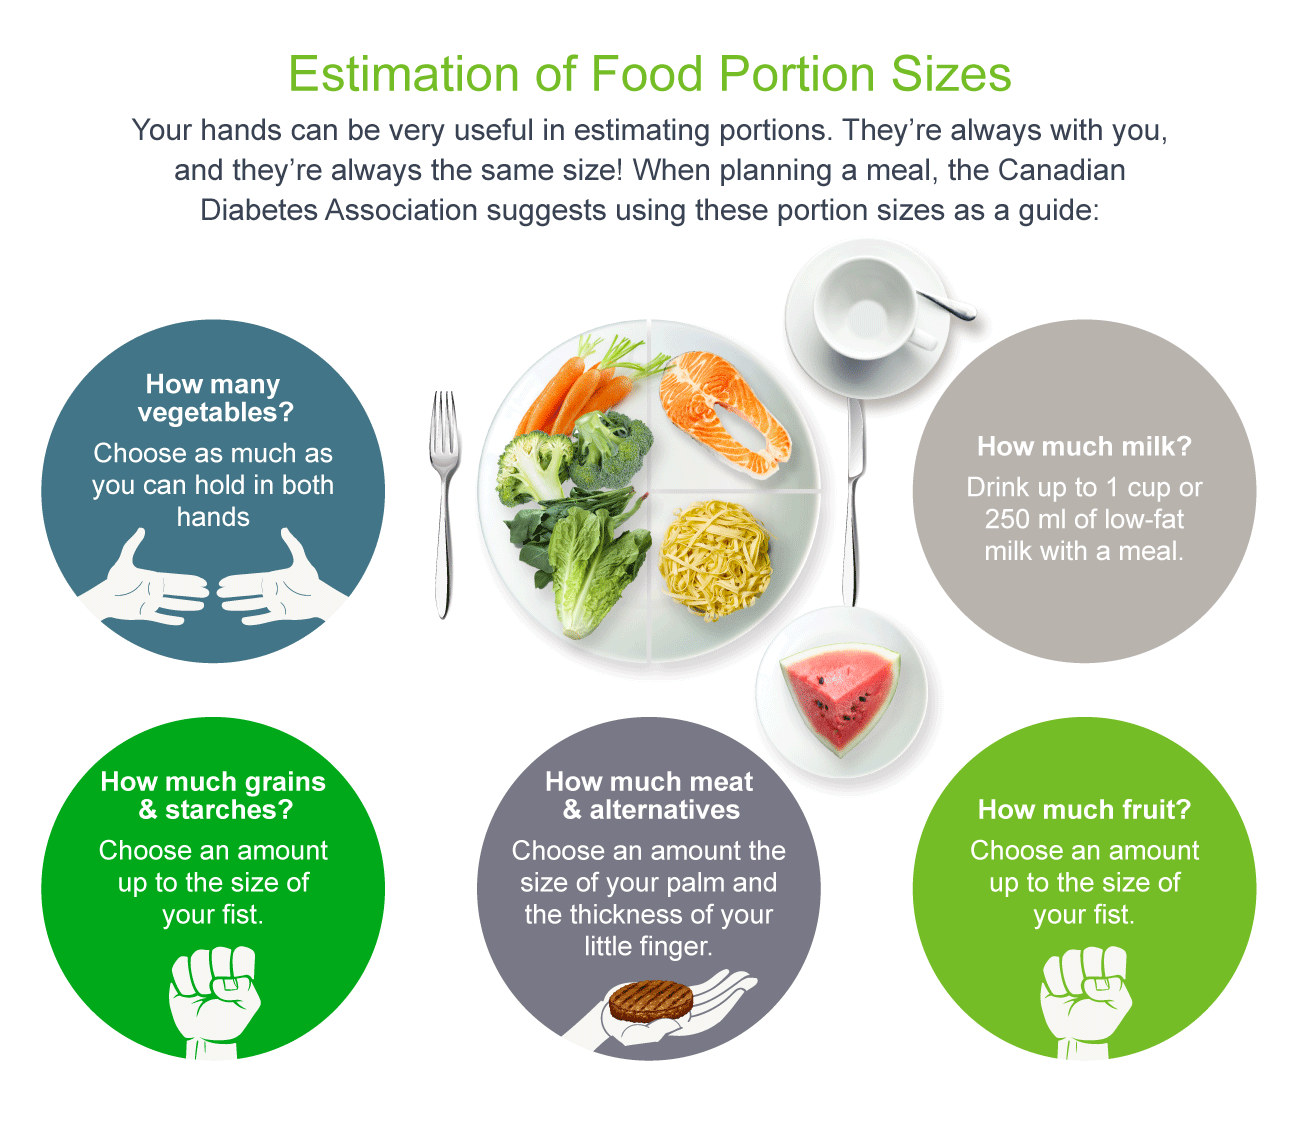 Estimation of Food Portion Sizes